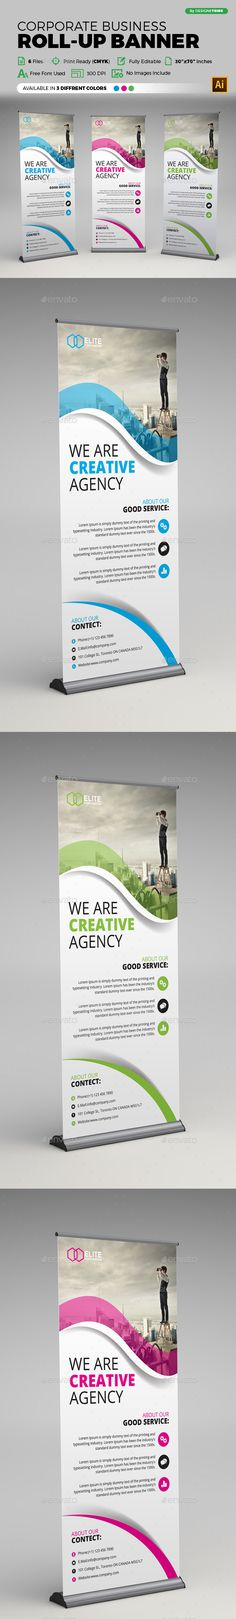 Corporate Business Roll-up Banner Ads Design Template - Signage Ads Banner Print Design Template Vector EPS, AI Illustrator. Download here: https://graphicriver.net/item/corporate-business-rollup-banner/18947452?ref=yinkira